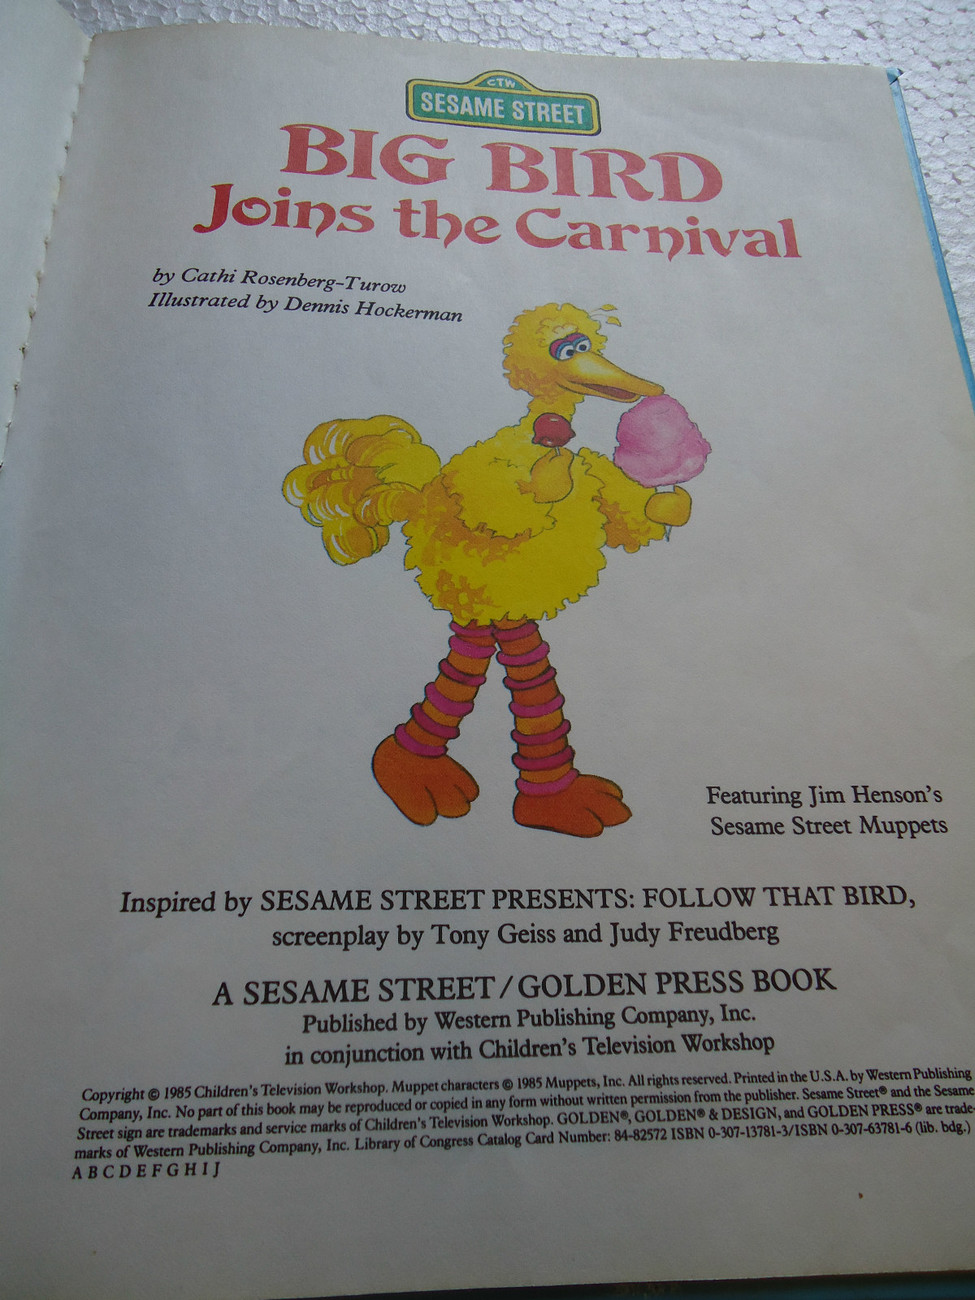 Sesame Street Book Club-Big Bird Joins the Carnival-Hardcover book 1985